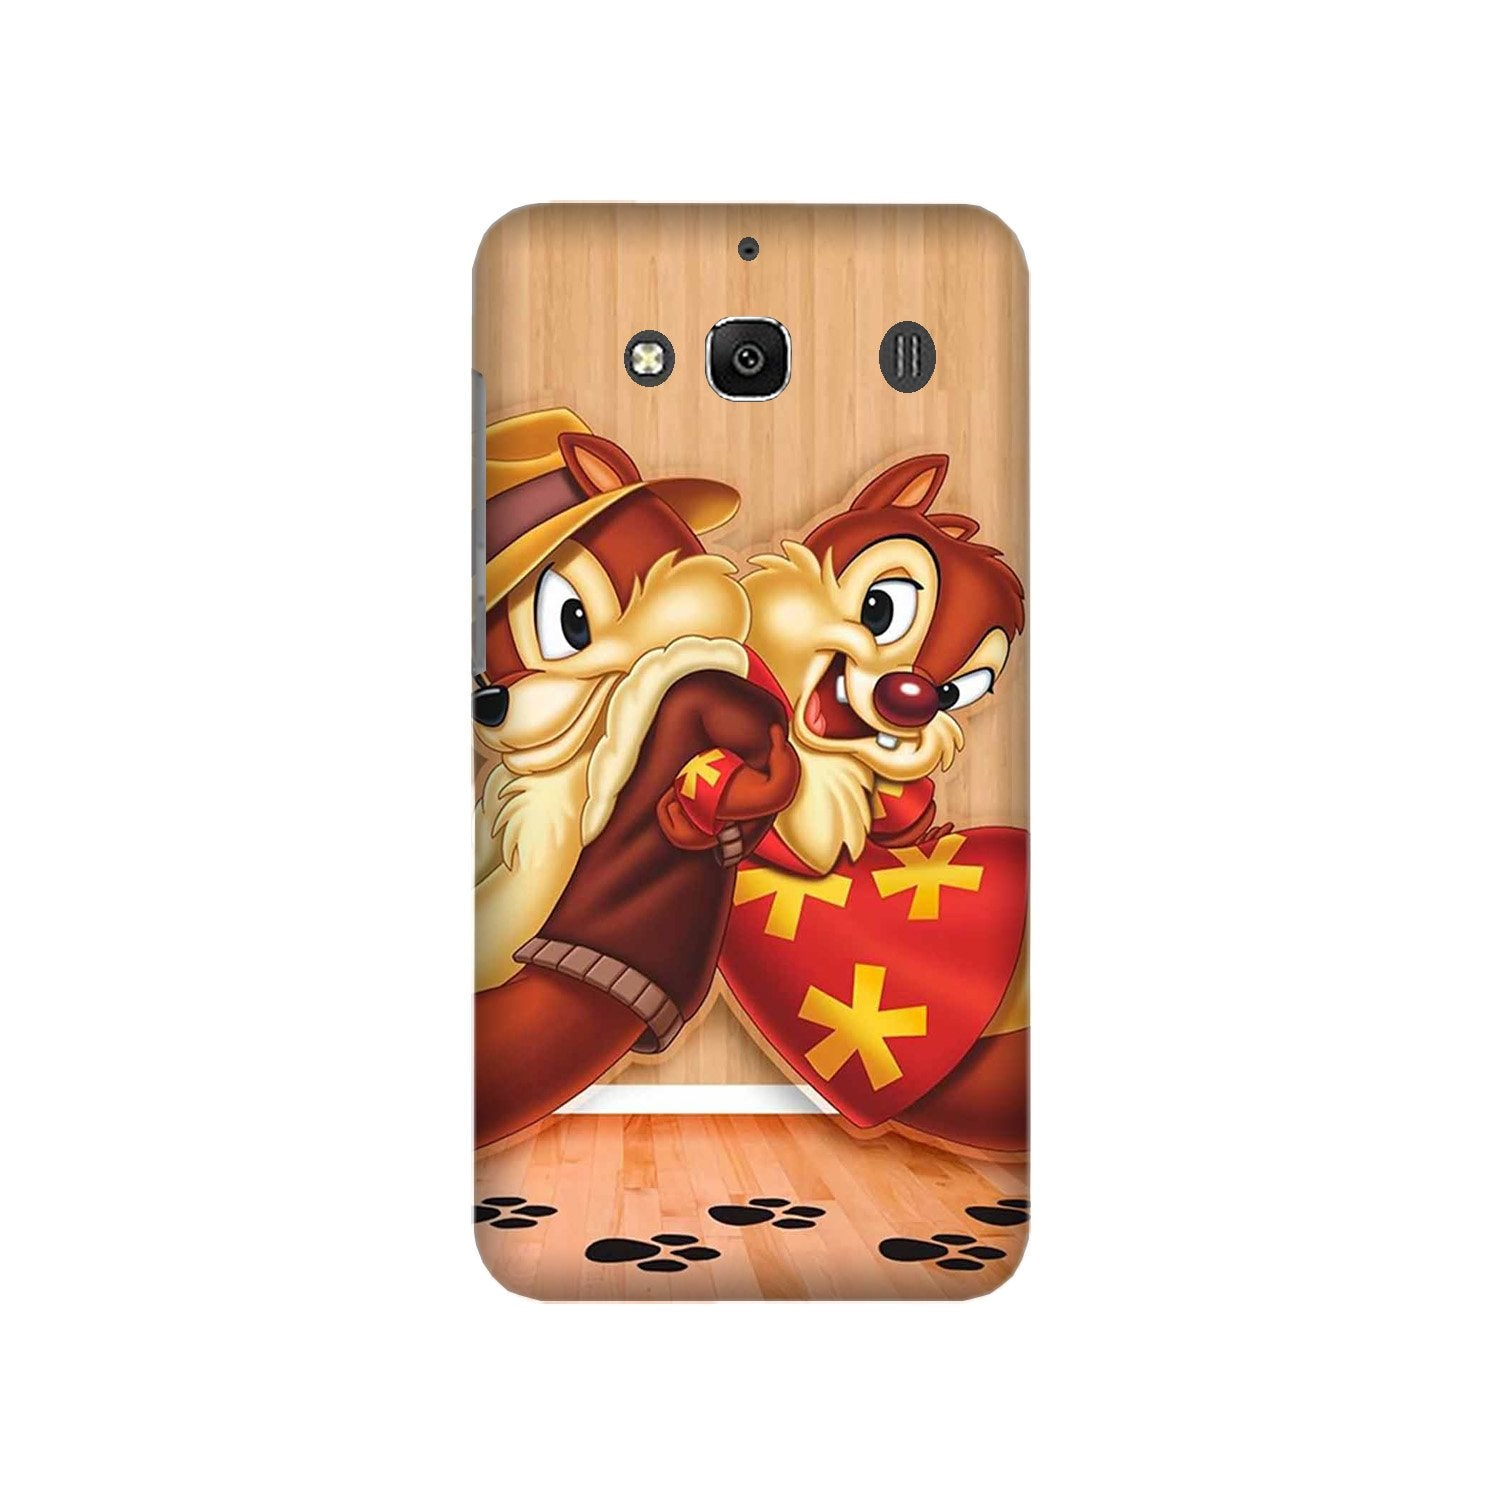 Chip n Dale Mobile Back Case for Redmi 2 Prime  (Design - 335)